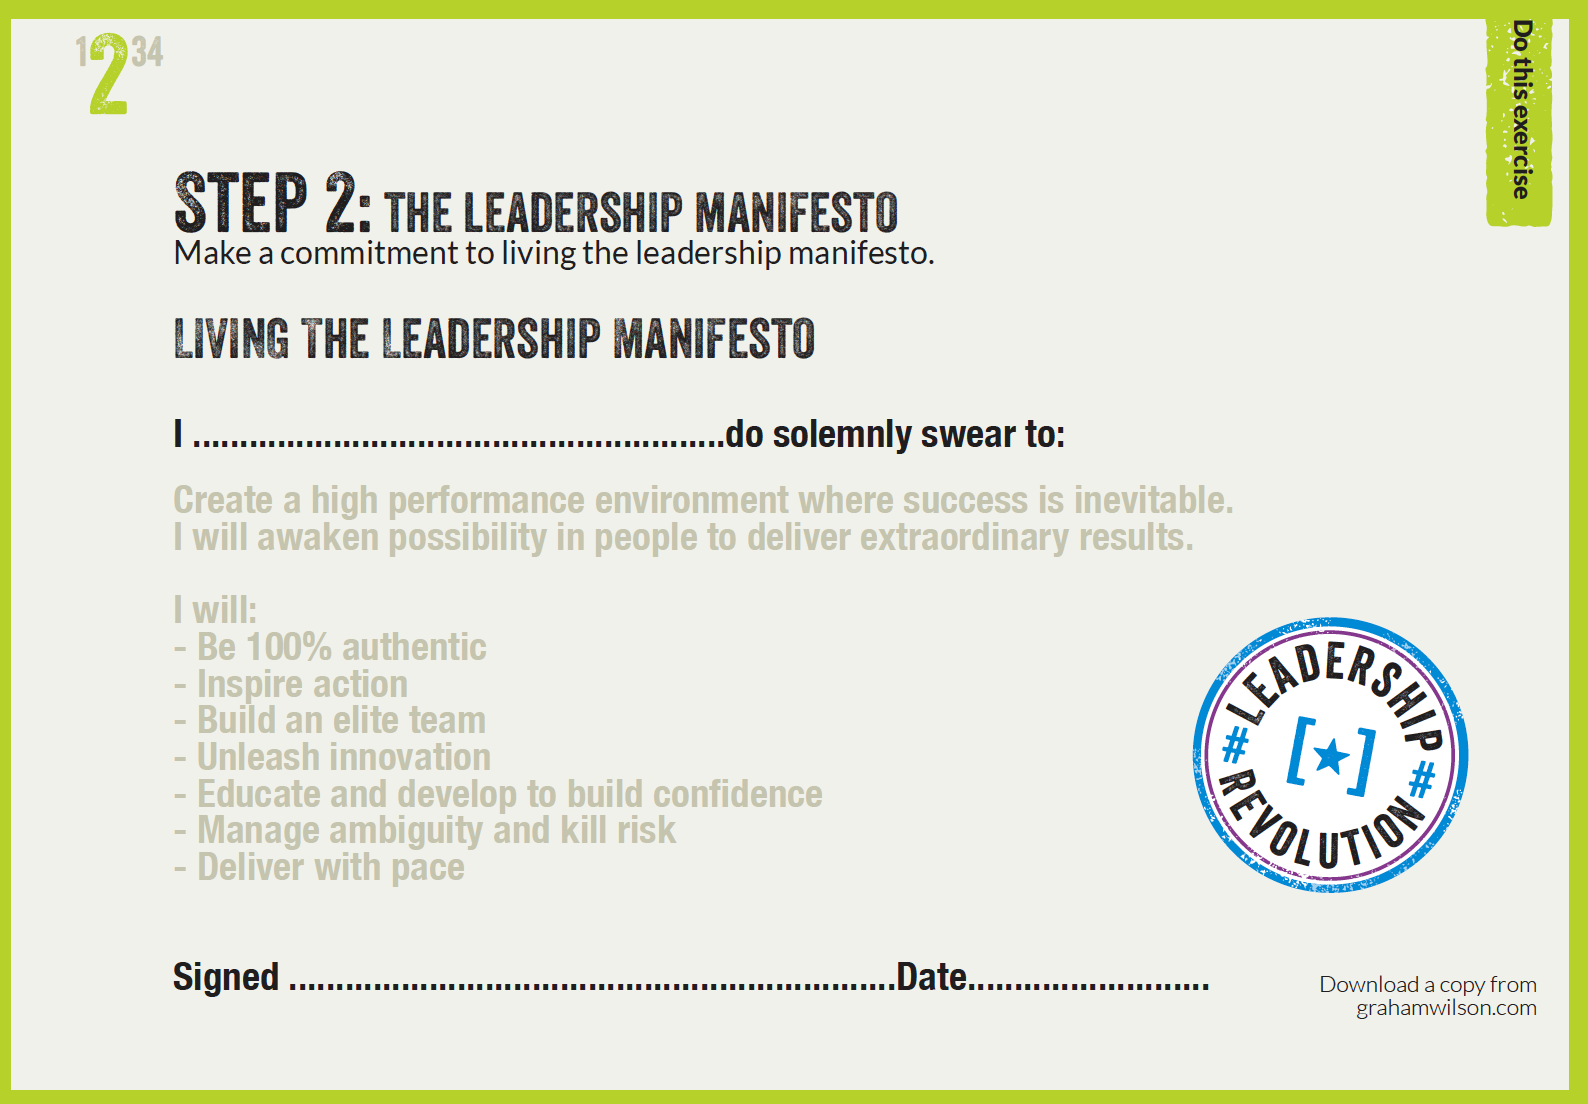 The Leadership Manifesto by Successfactory